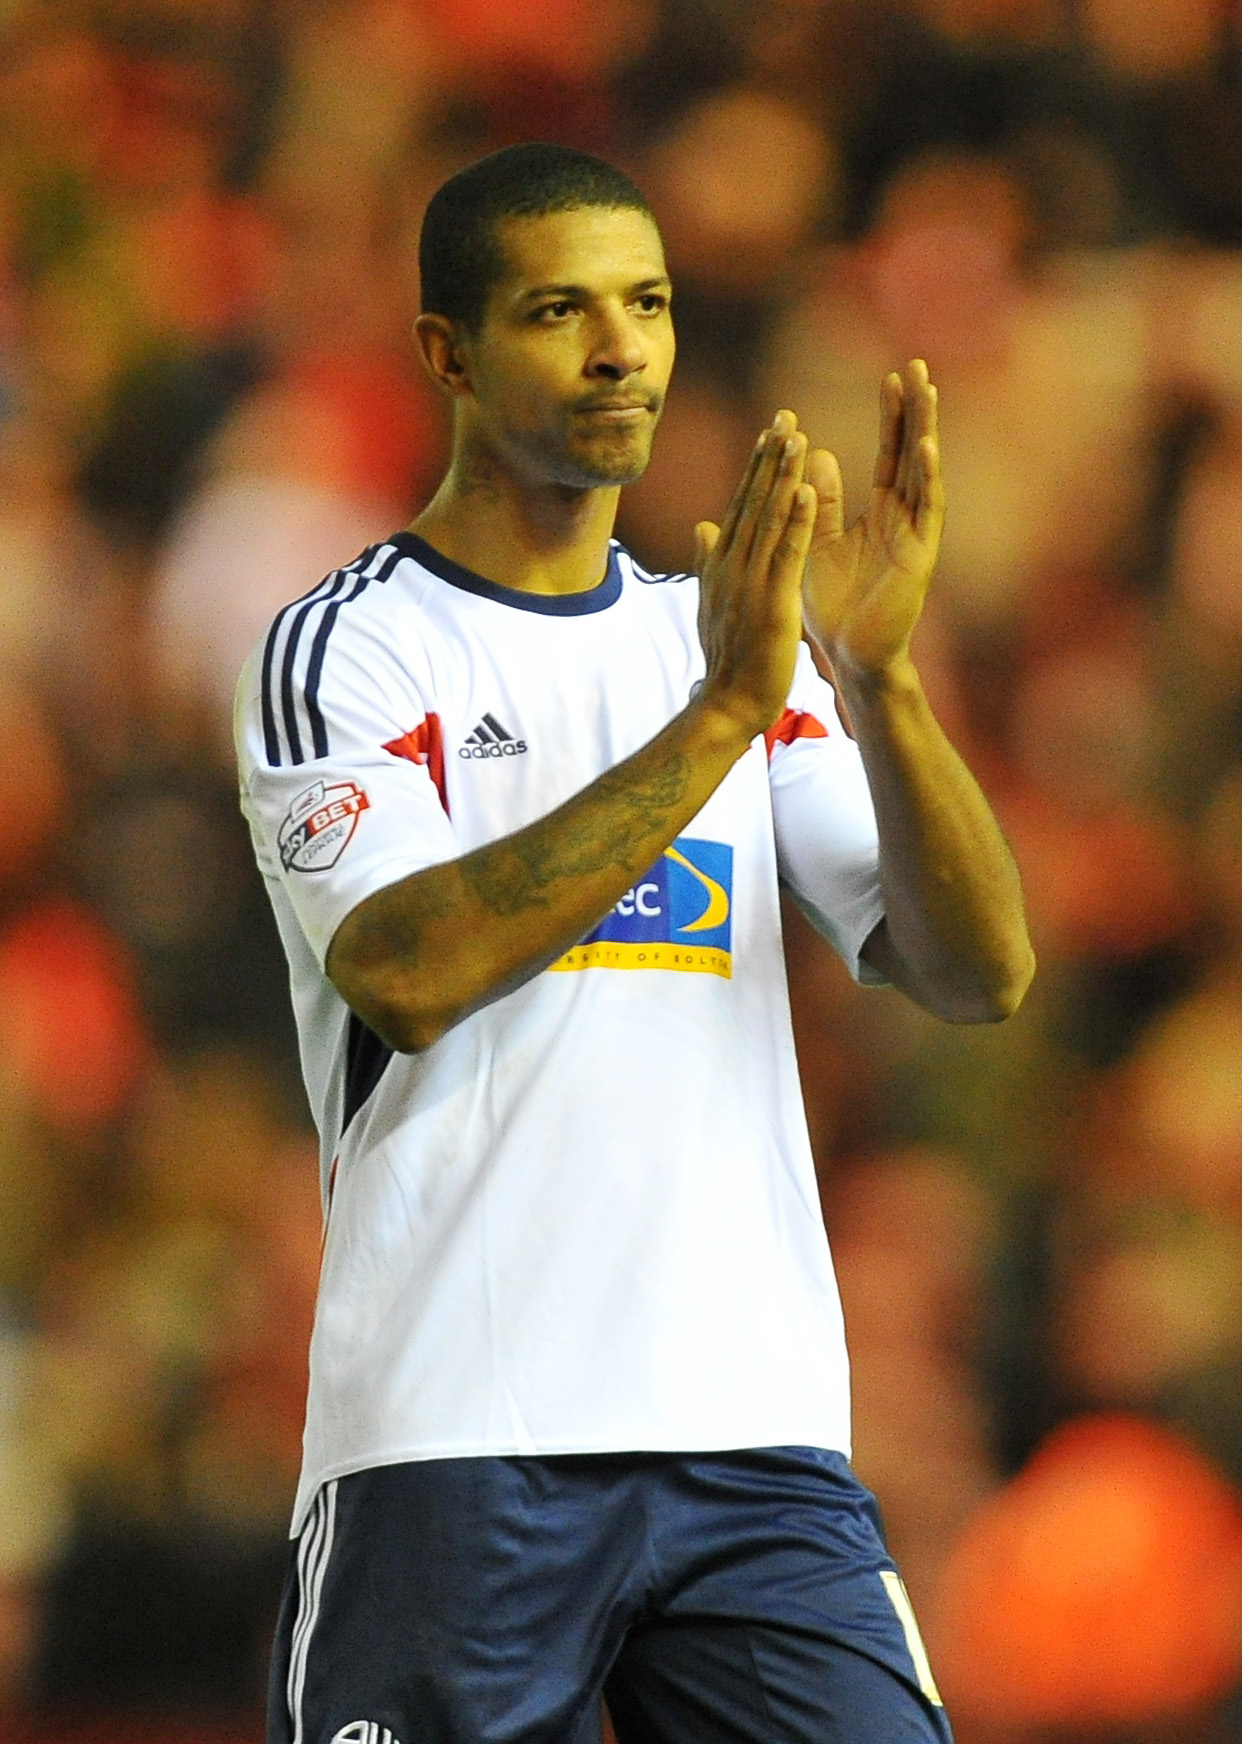 Wanderers striker Jermaine Beckford